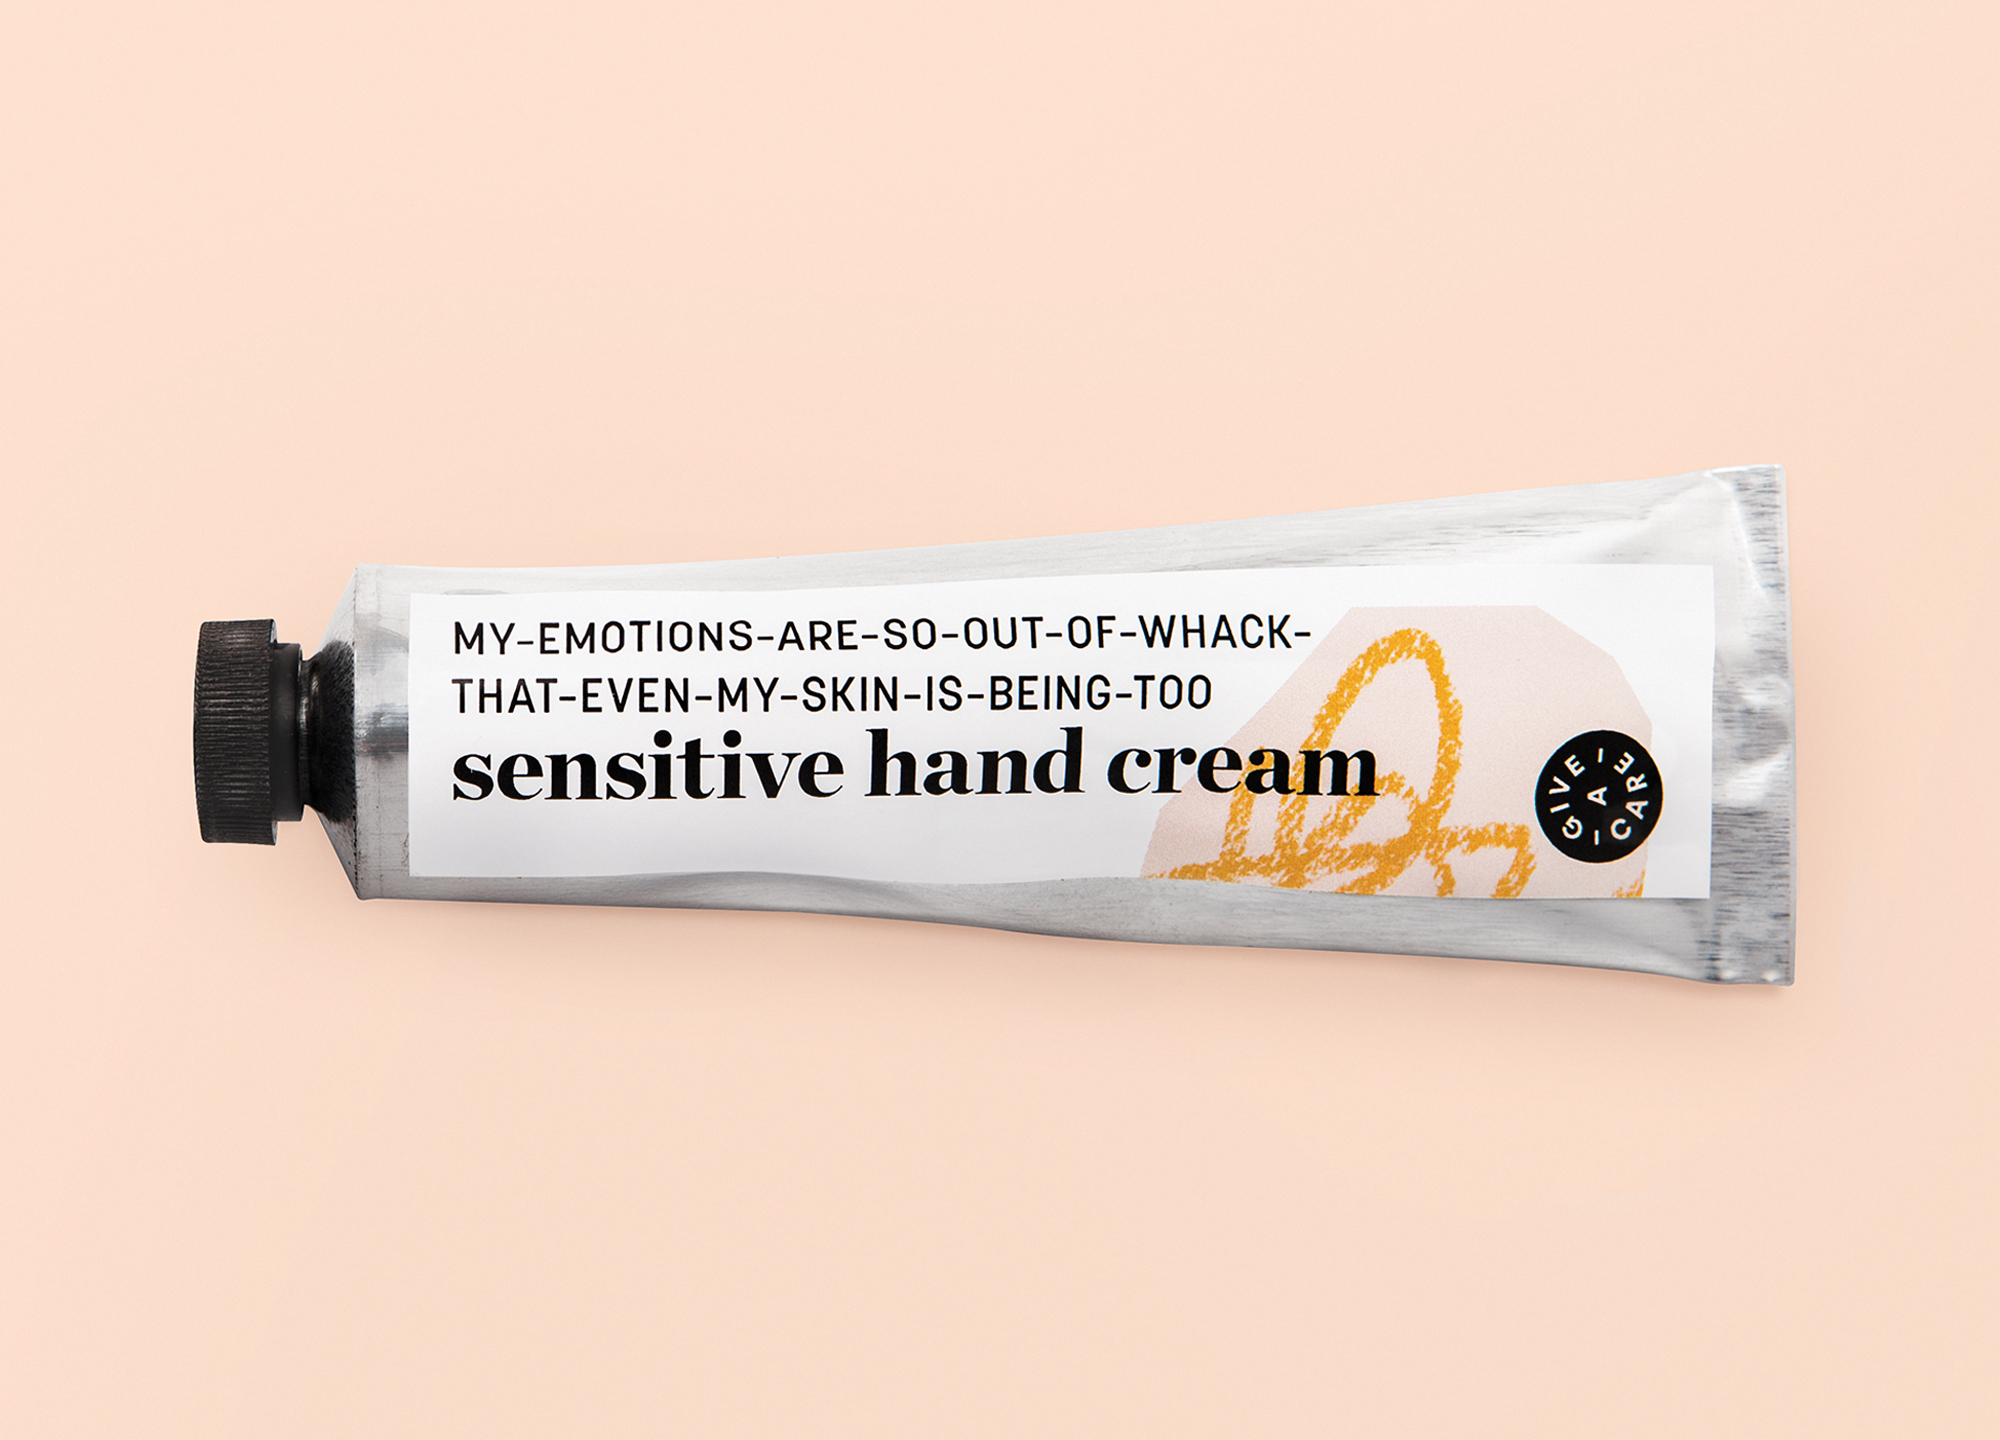 give_a_care_hand_cream.jpg